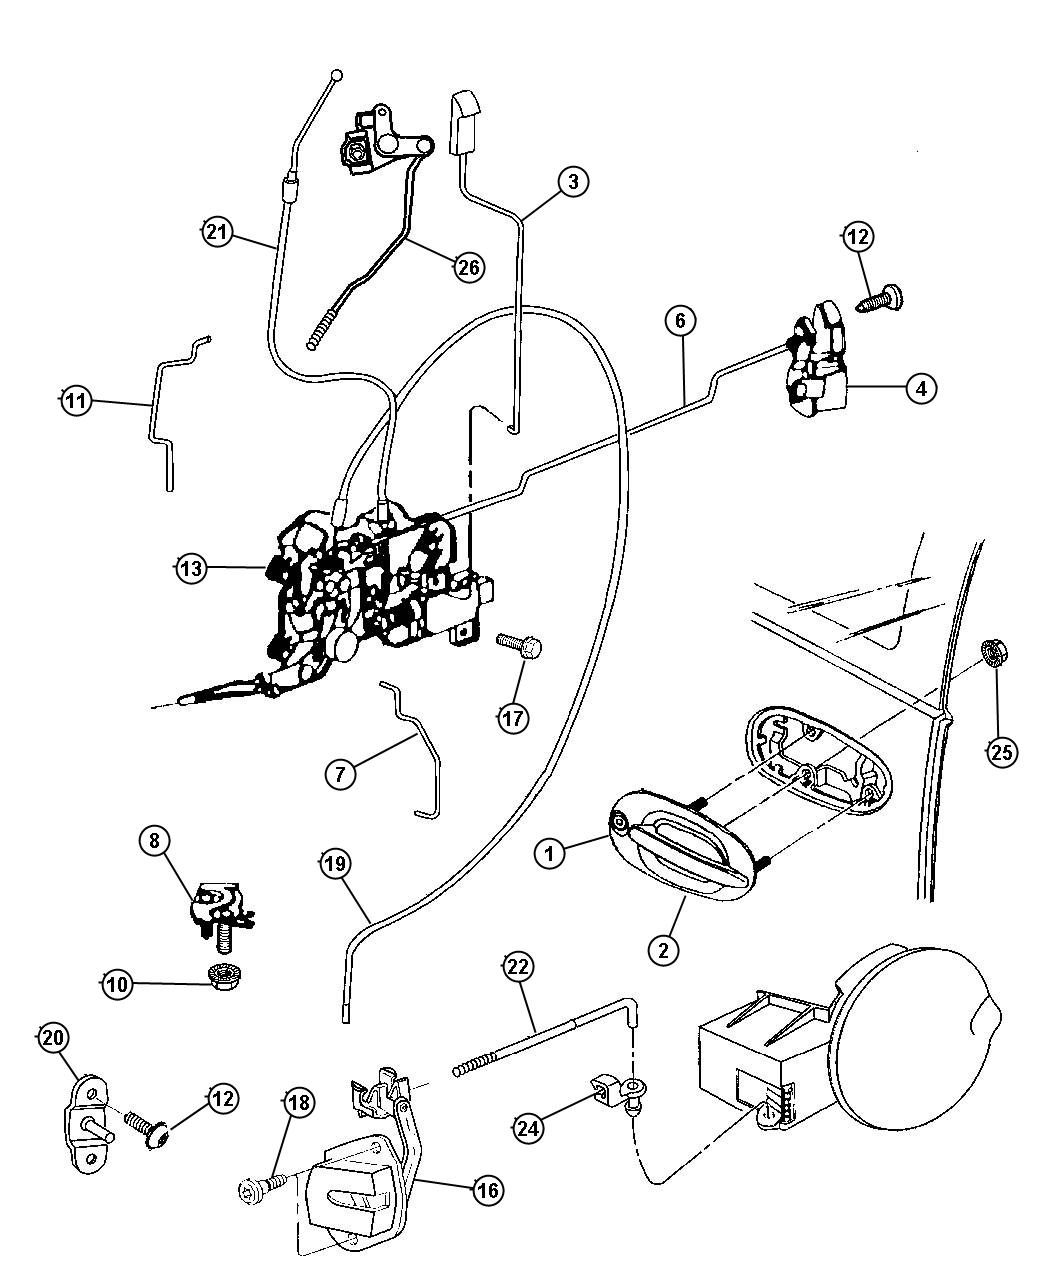 Service manual [1997 Plymouth Grand Voyager Front Door